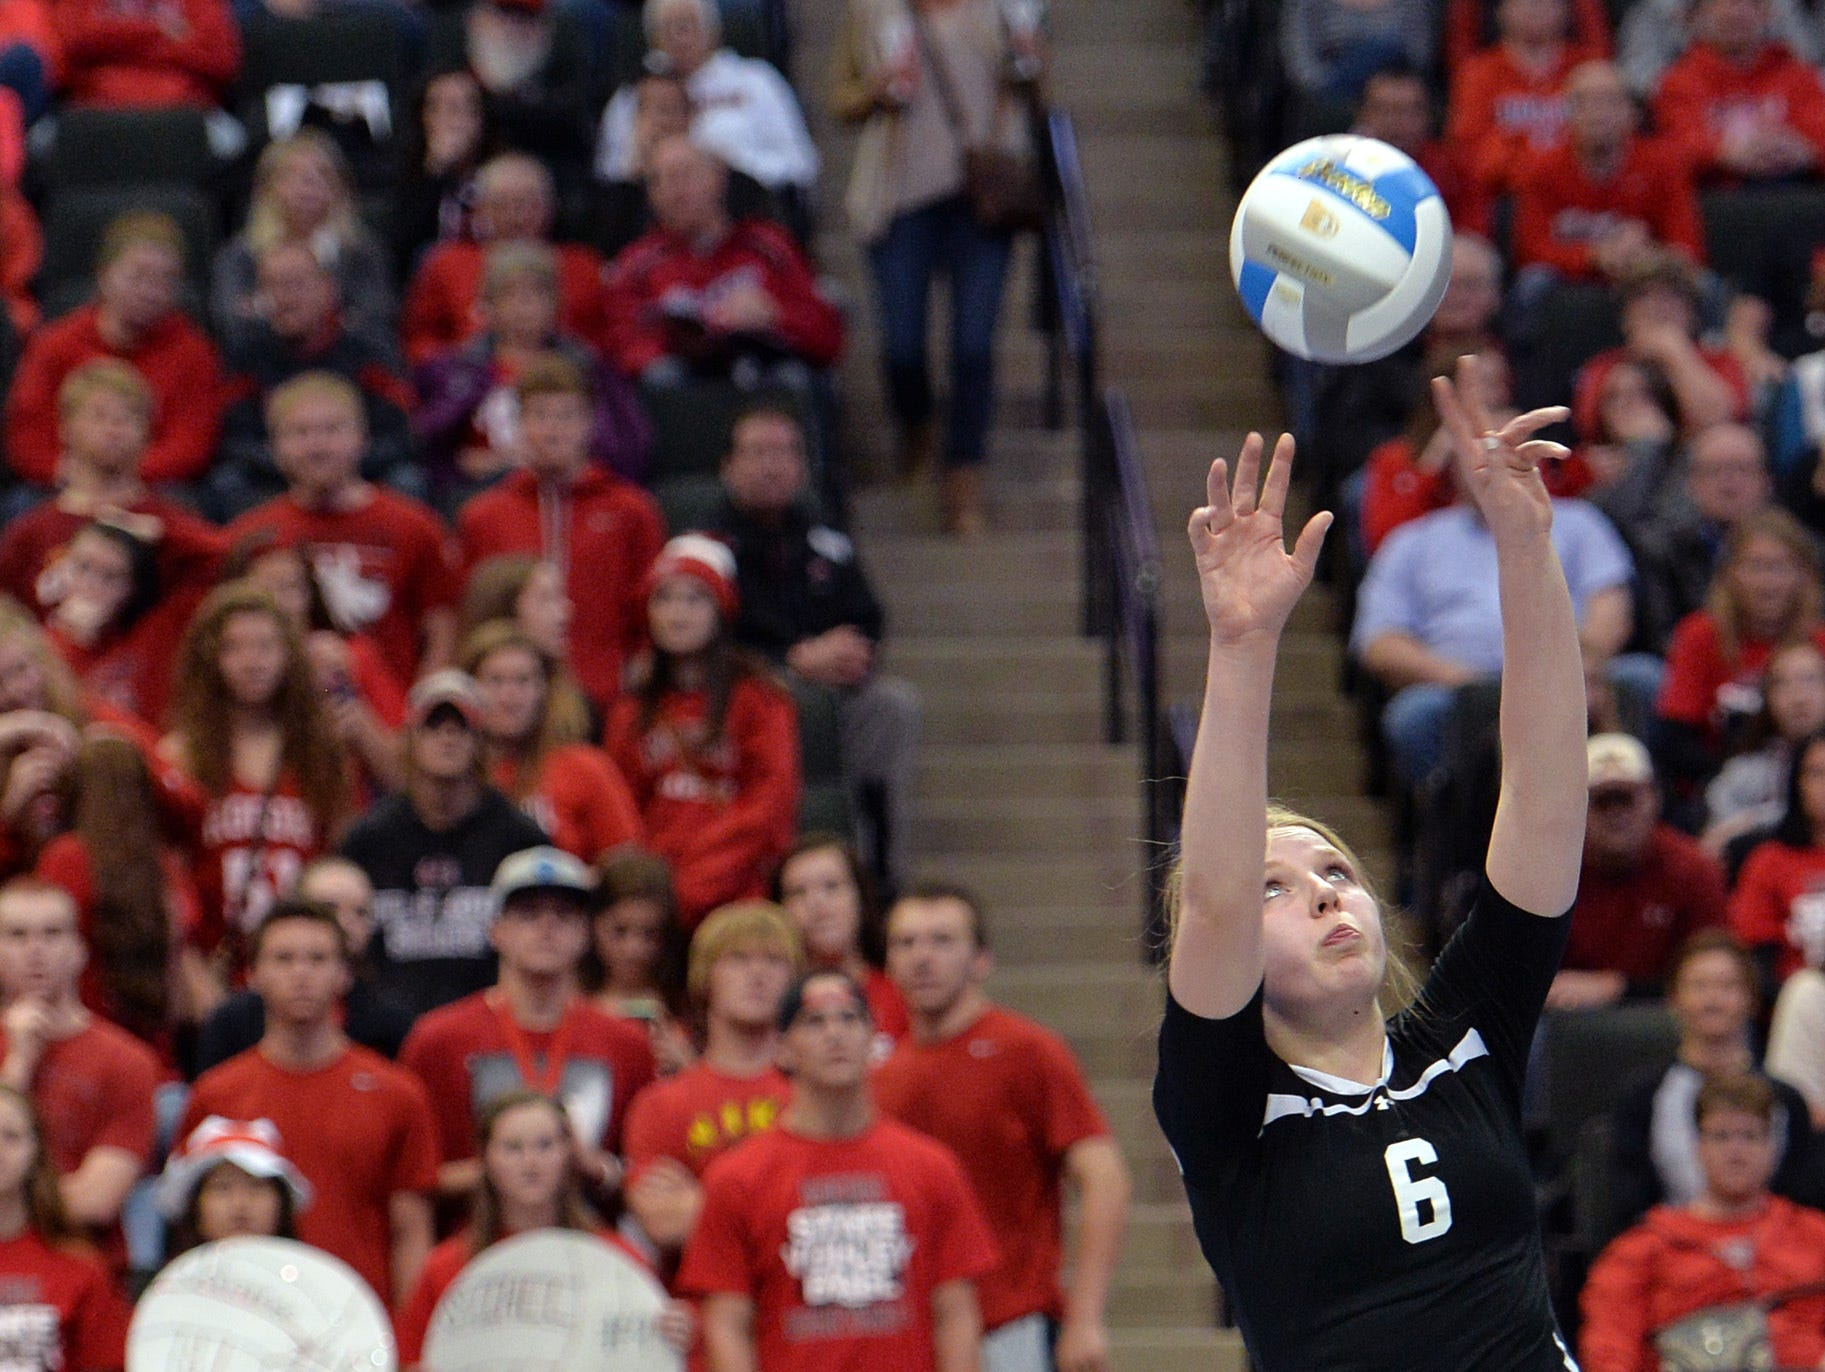 Rocori sophomore Eleanor Holthaus prepares to the set the ball in a Class 2A state quarterfinal win over Morris/Chokio-Alberta on Nov. 12. The sophomore has been named the 2015 Times' All-Area player of the year.